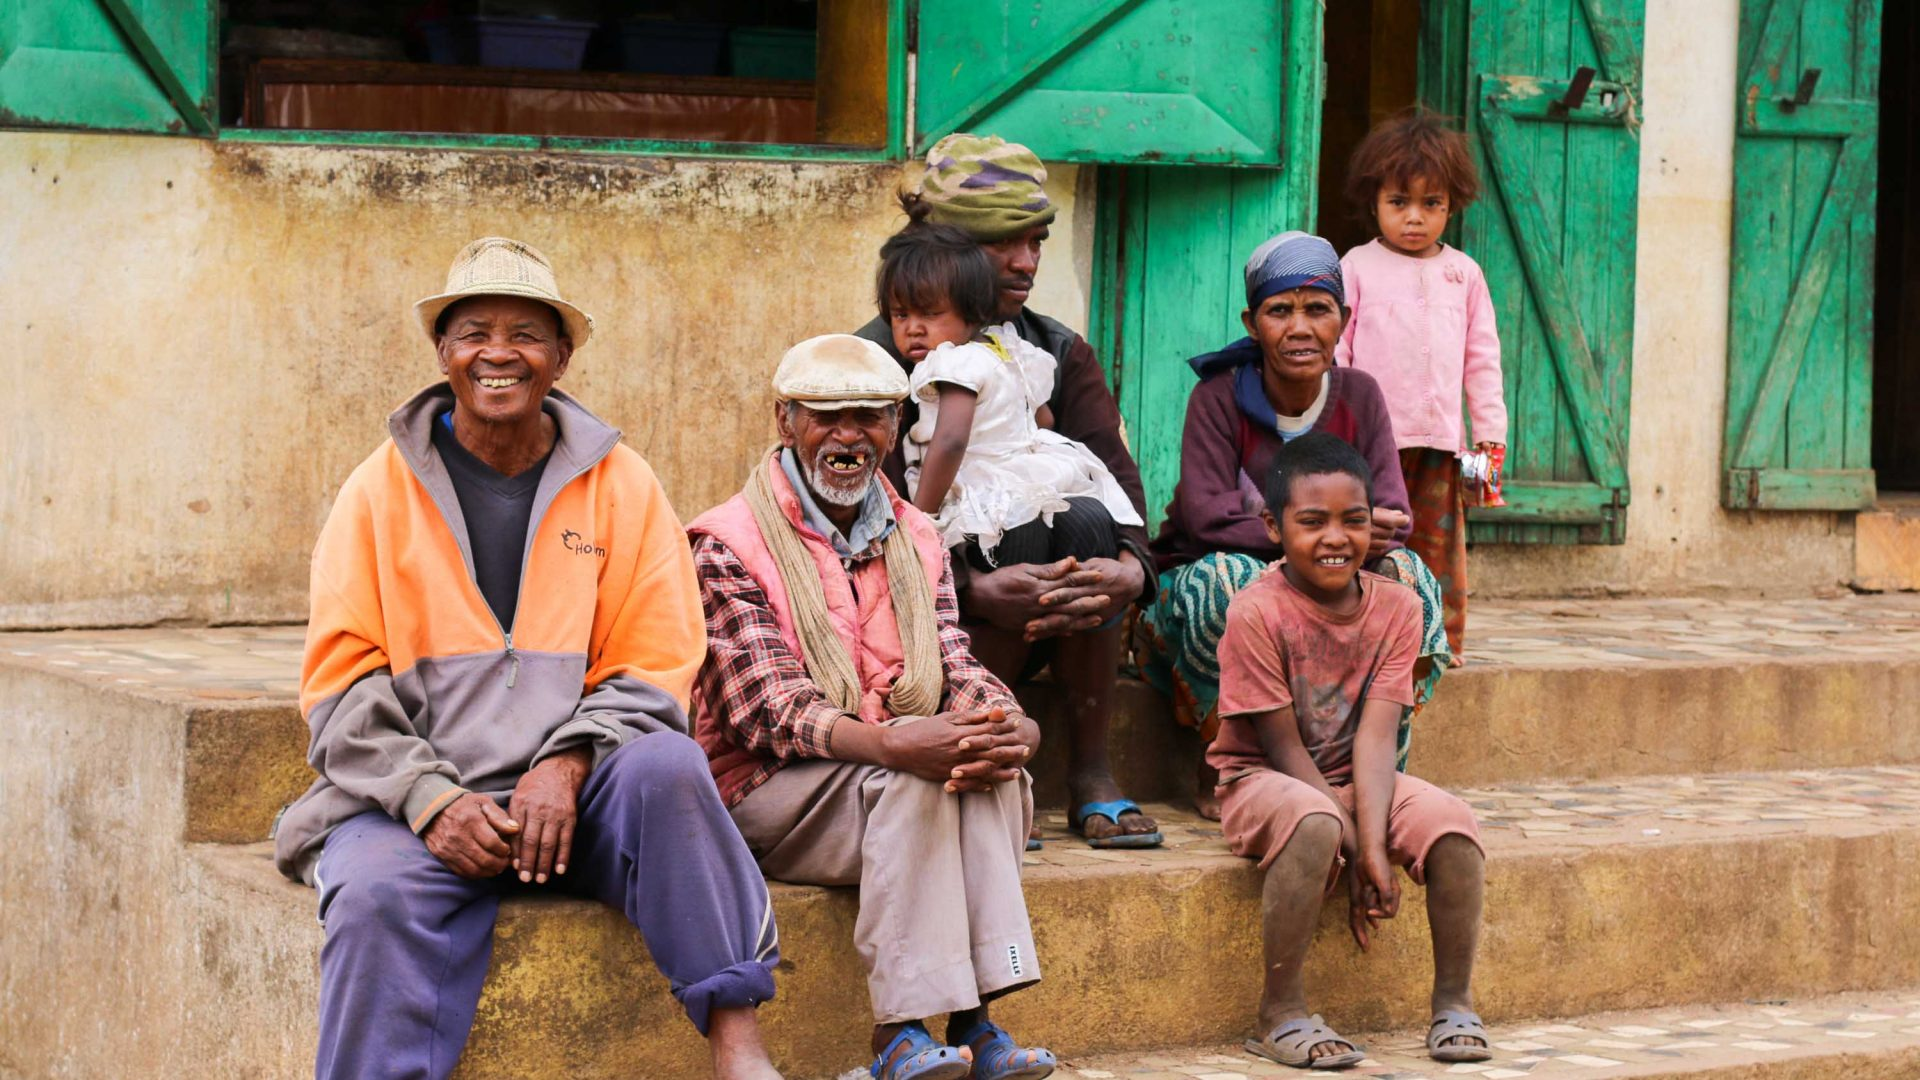 Meeting local people on a roadside stop in Madagascar.